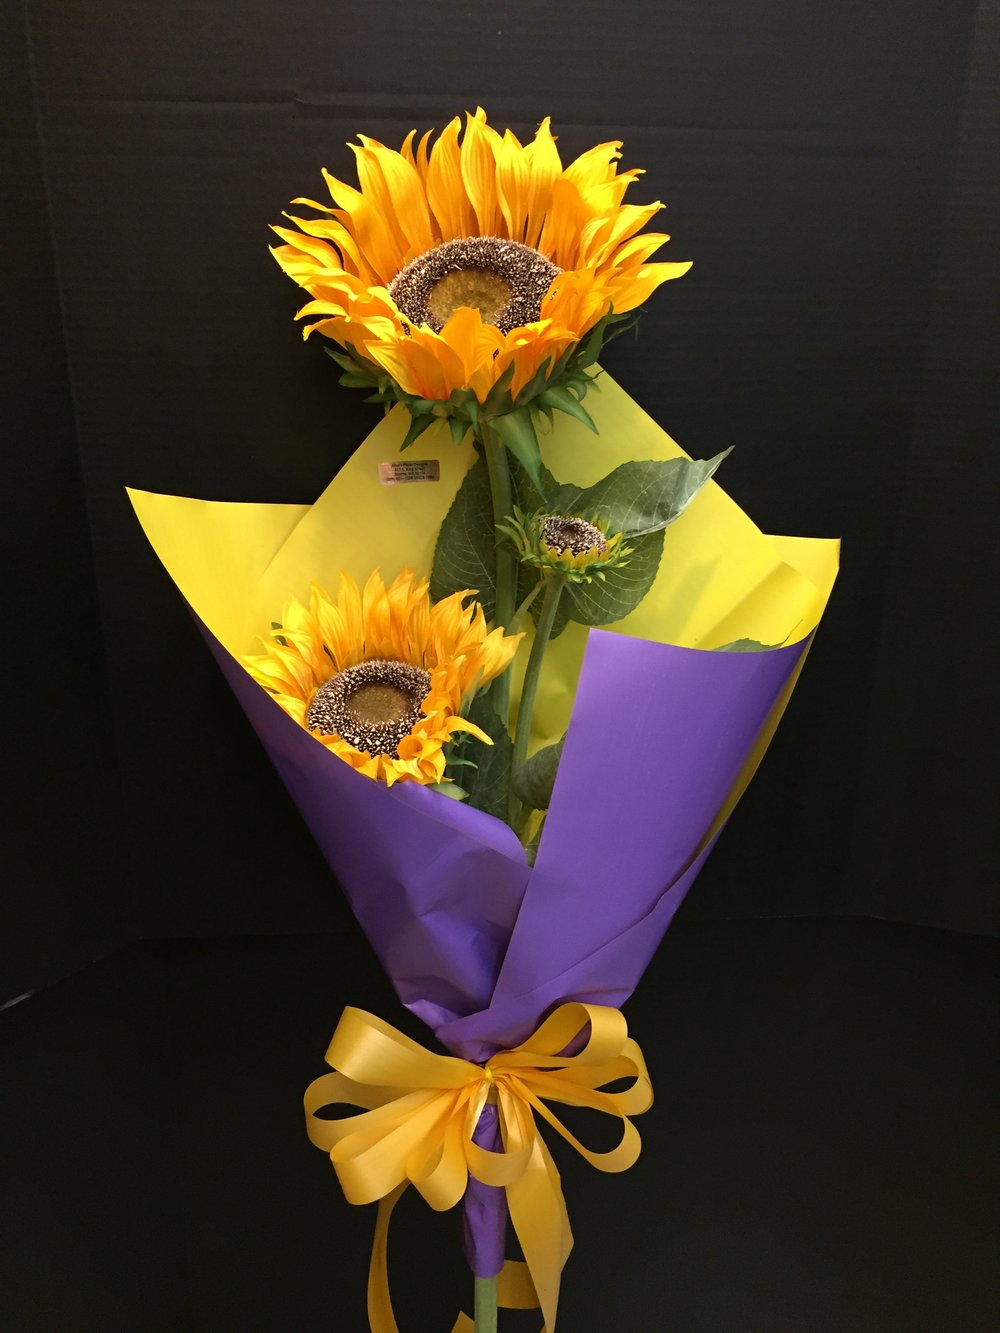 Sunflower Bouquet (TVB-109)